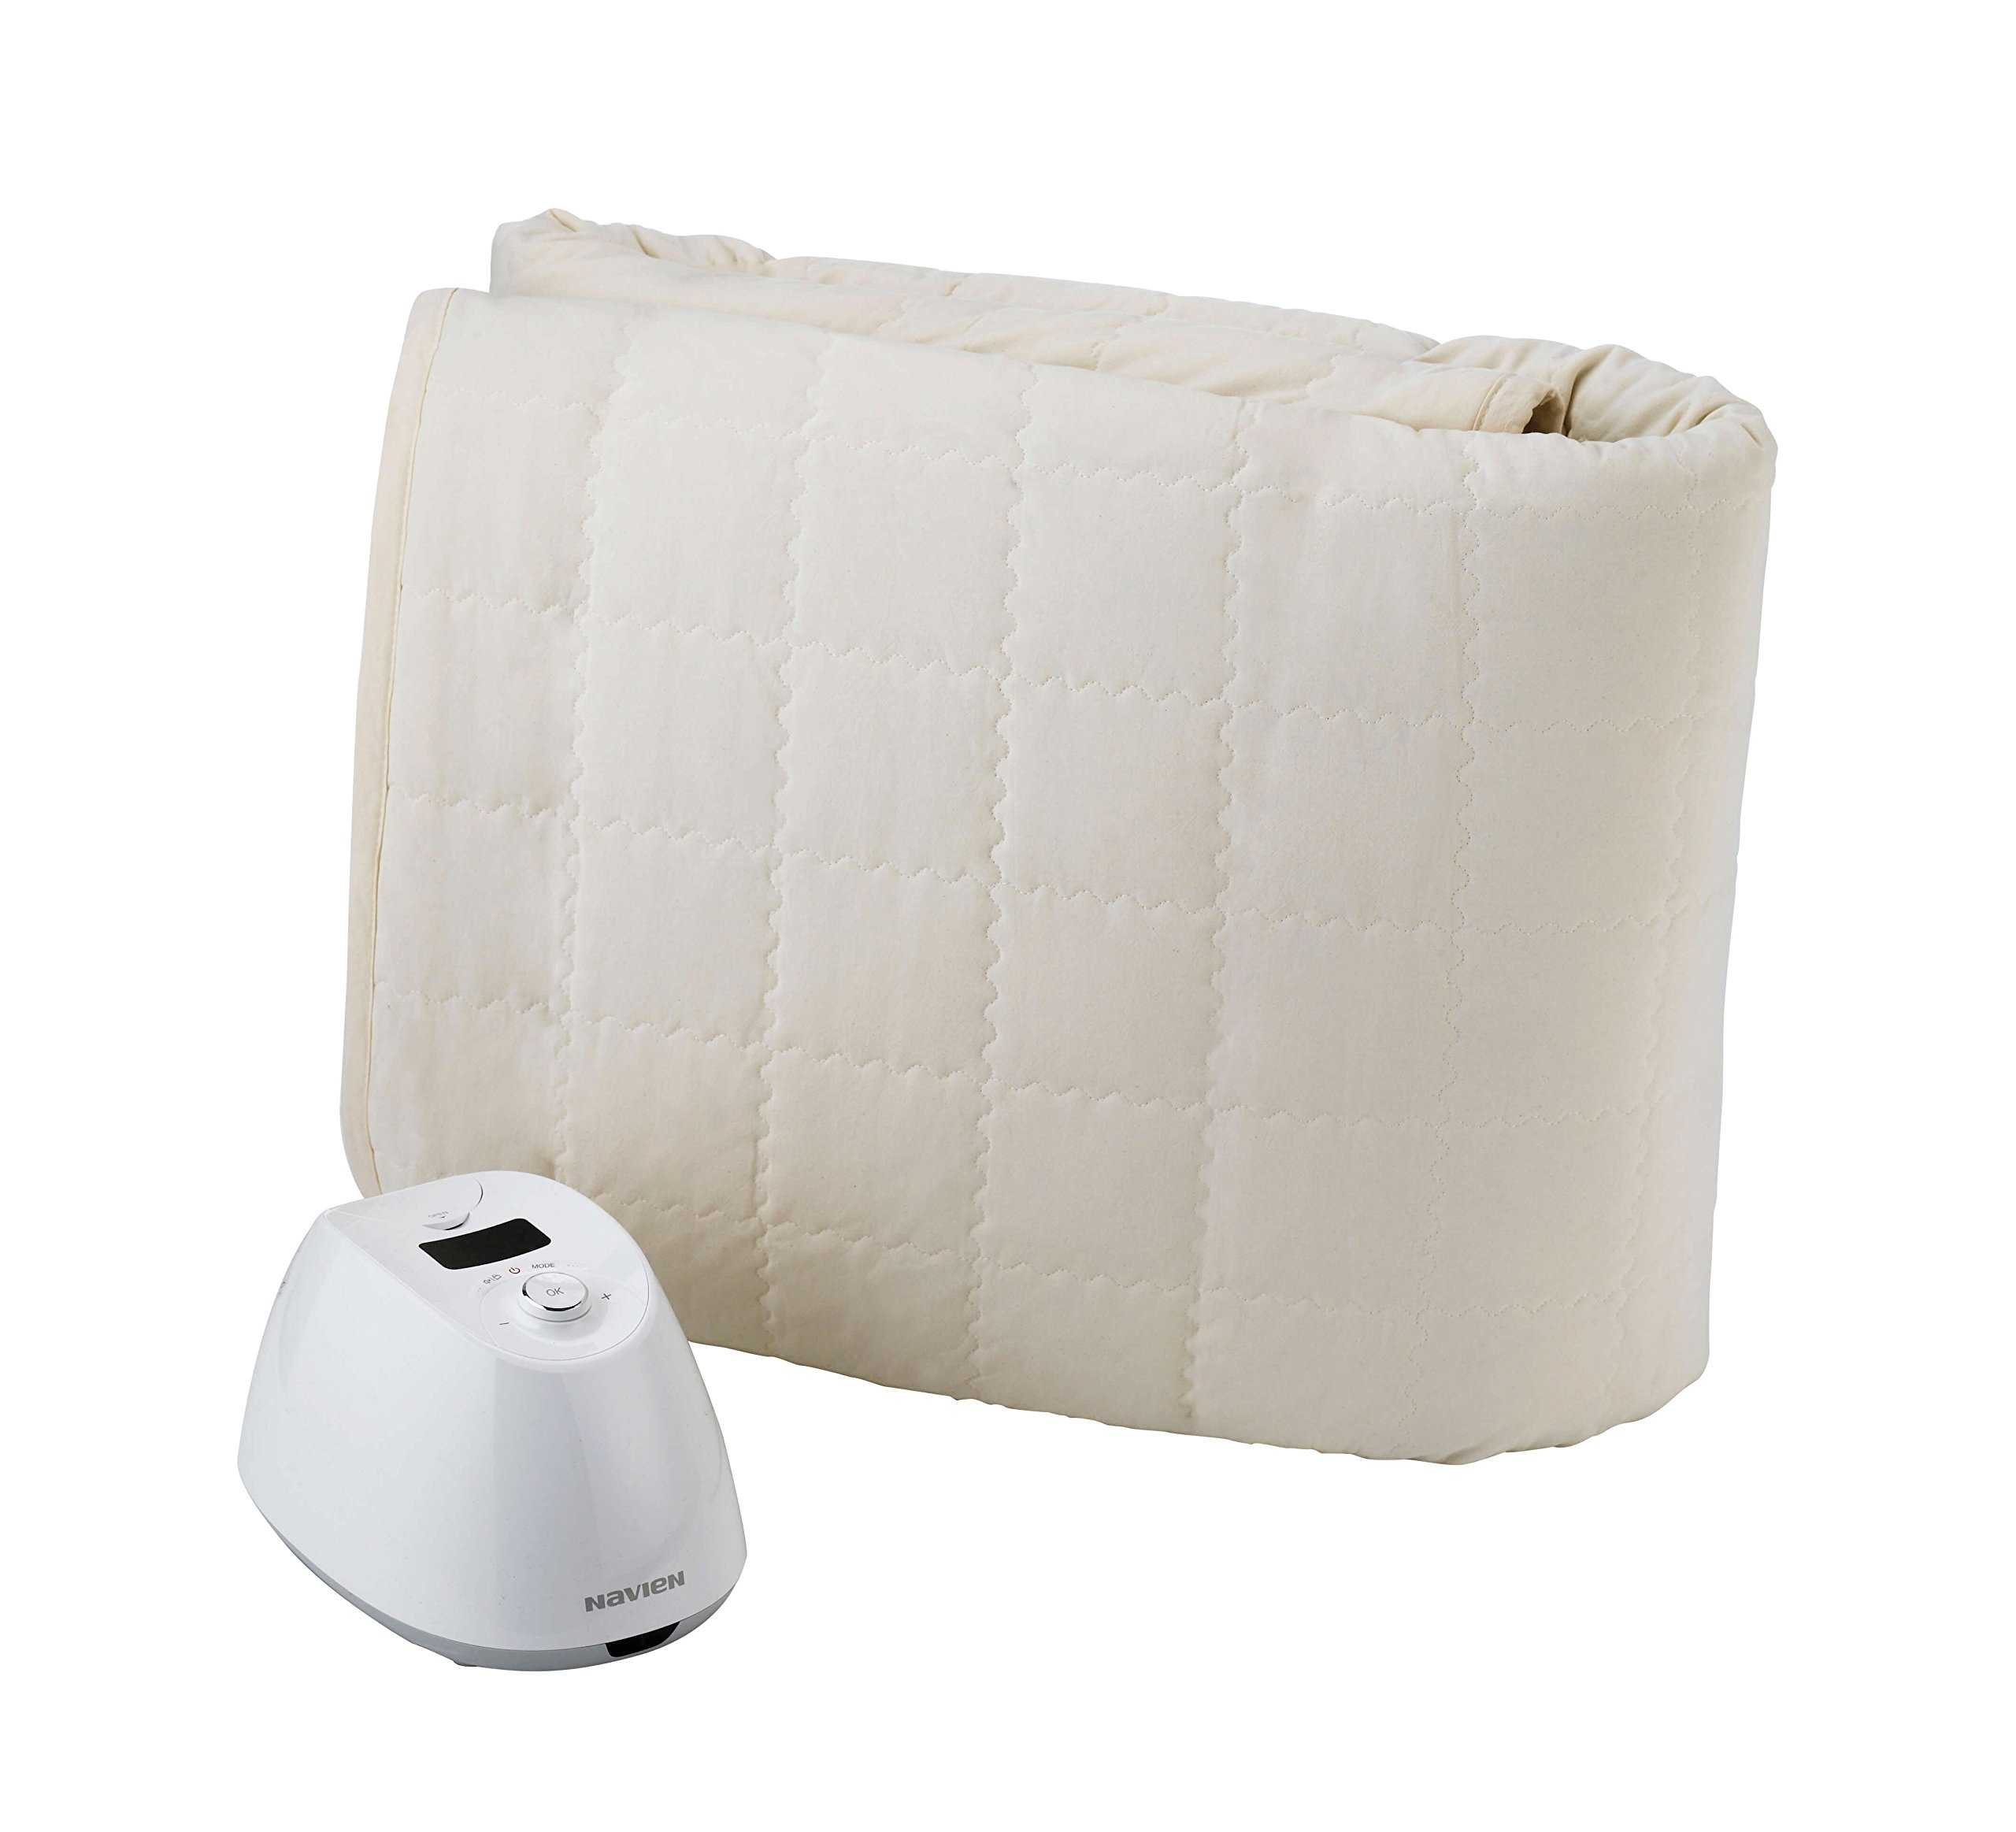 Comfort-Mate Cushion Type by KD Navien(Queen Size)